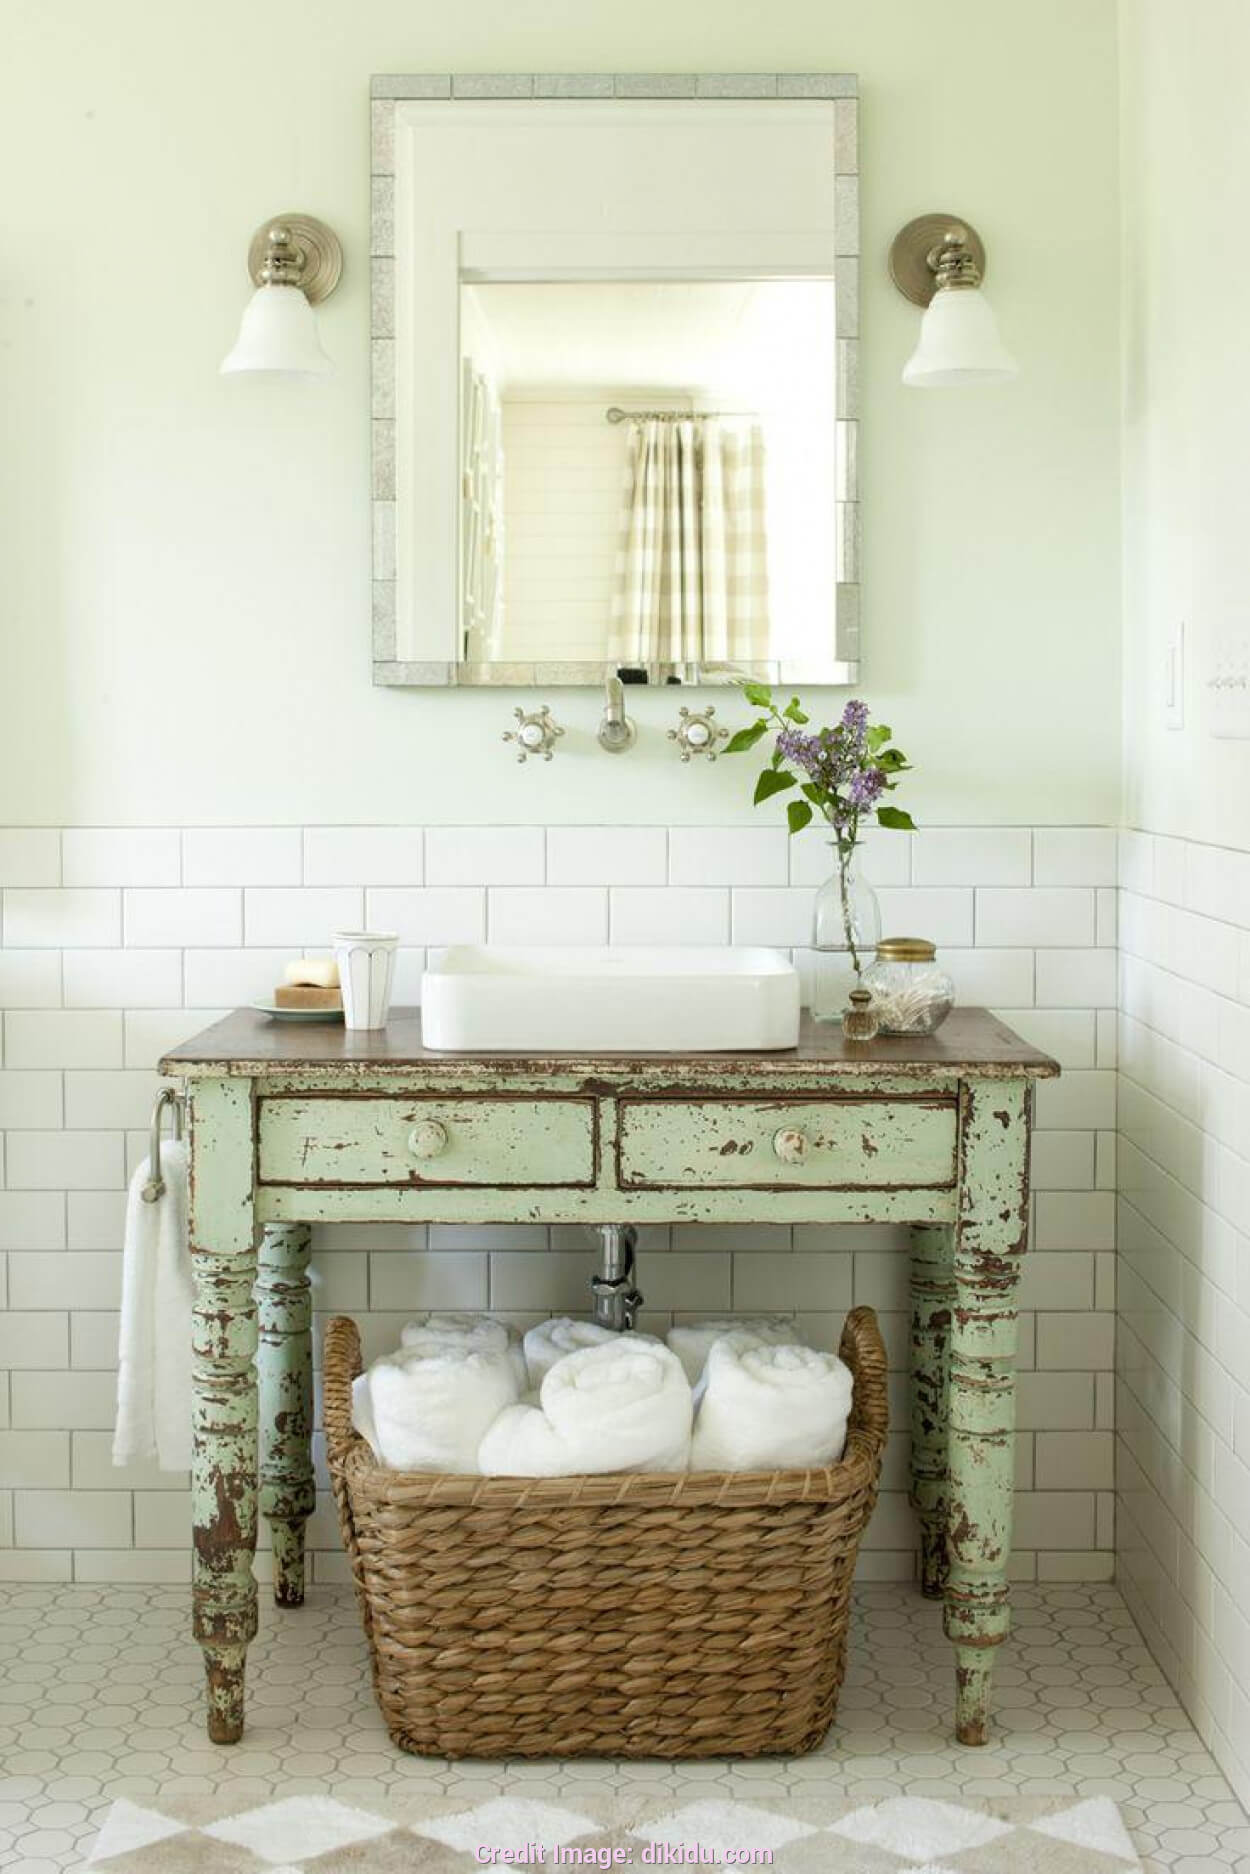 bathrooms renovation remodel reveal farmhouse pin style cottage bathroom kylpyhuone modern